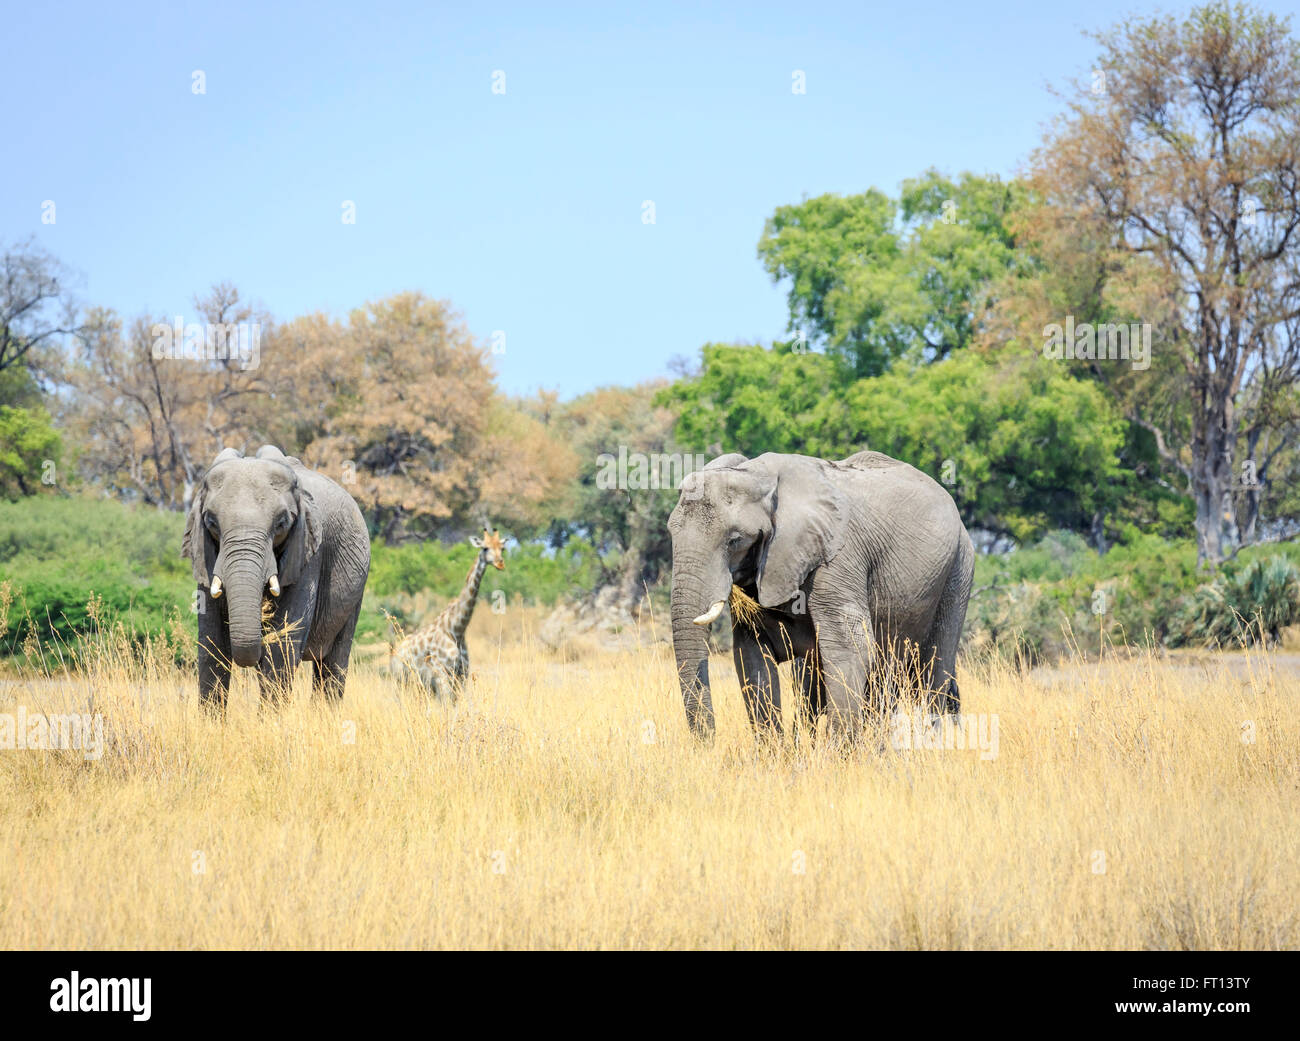 Two African bush elephants (Loxodonta africana) in savannah grassland eating grass, giraffe behind, Sandibe Camp, Stock Photo